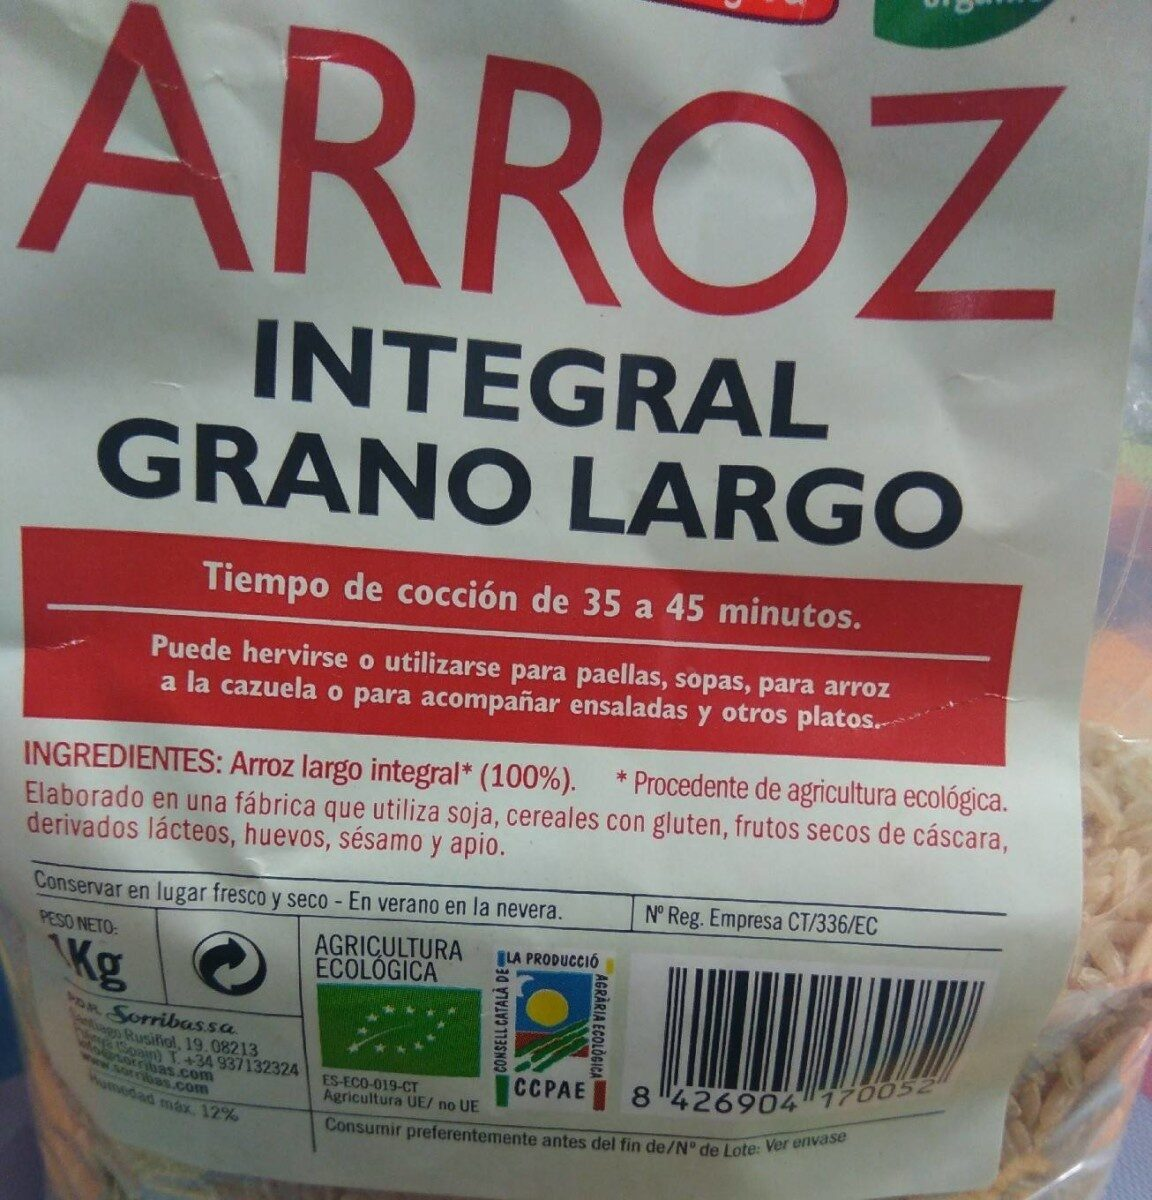 Arroz integral grano largo - Nutrition facts